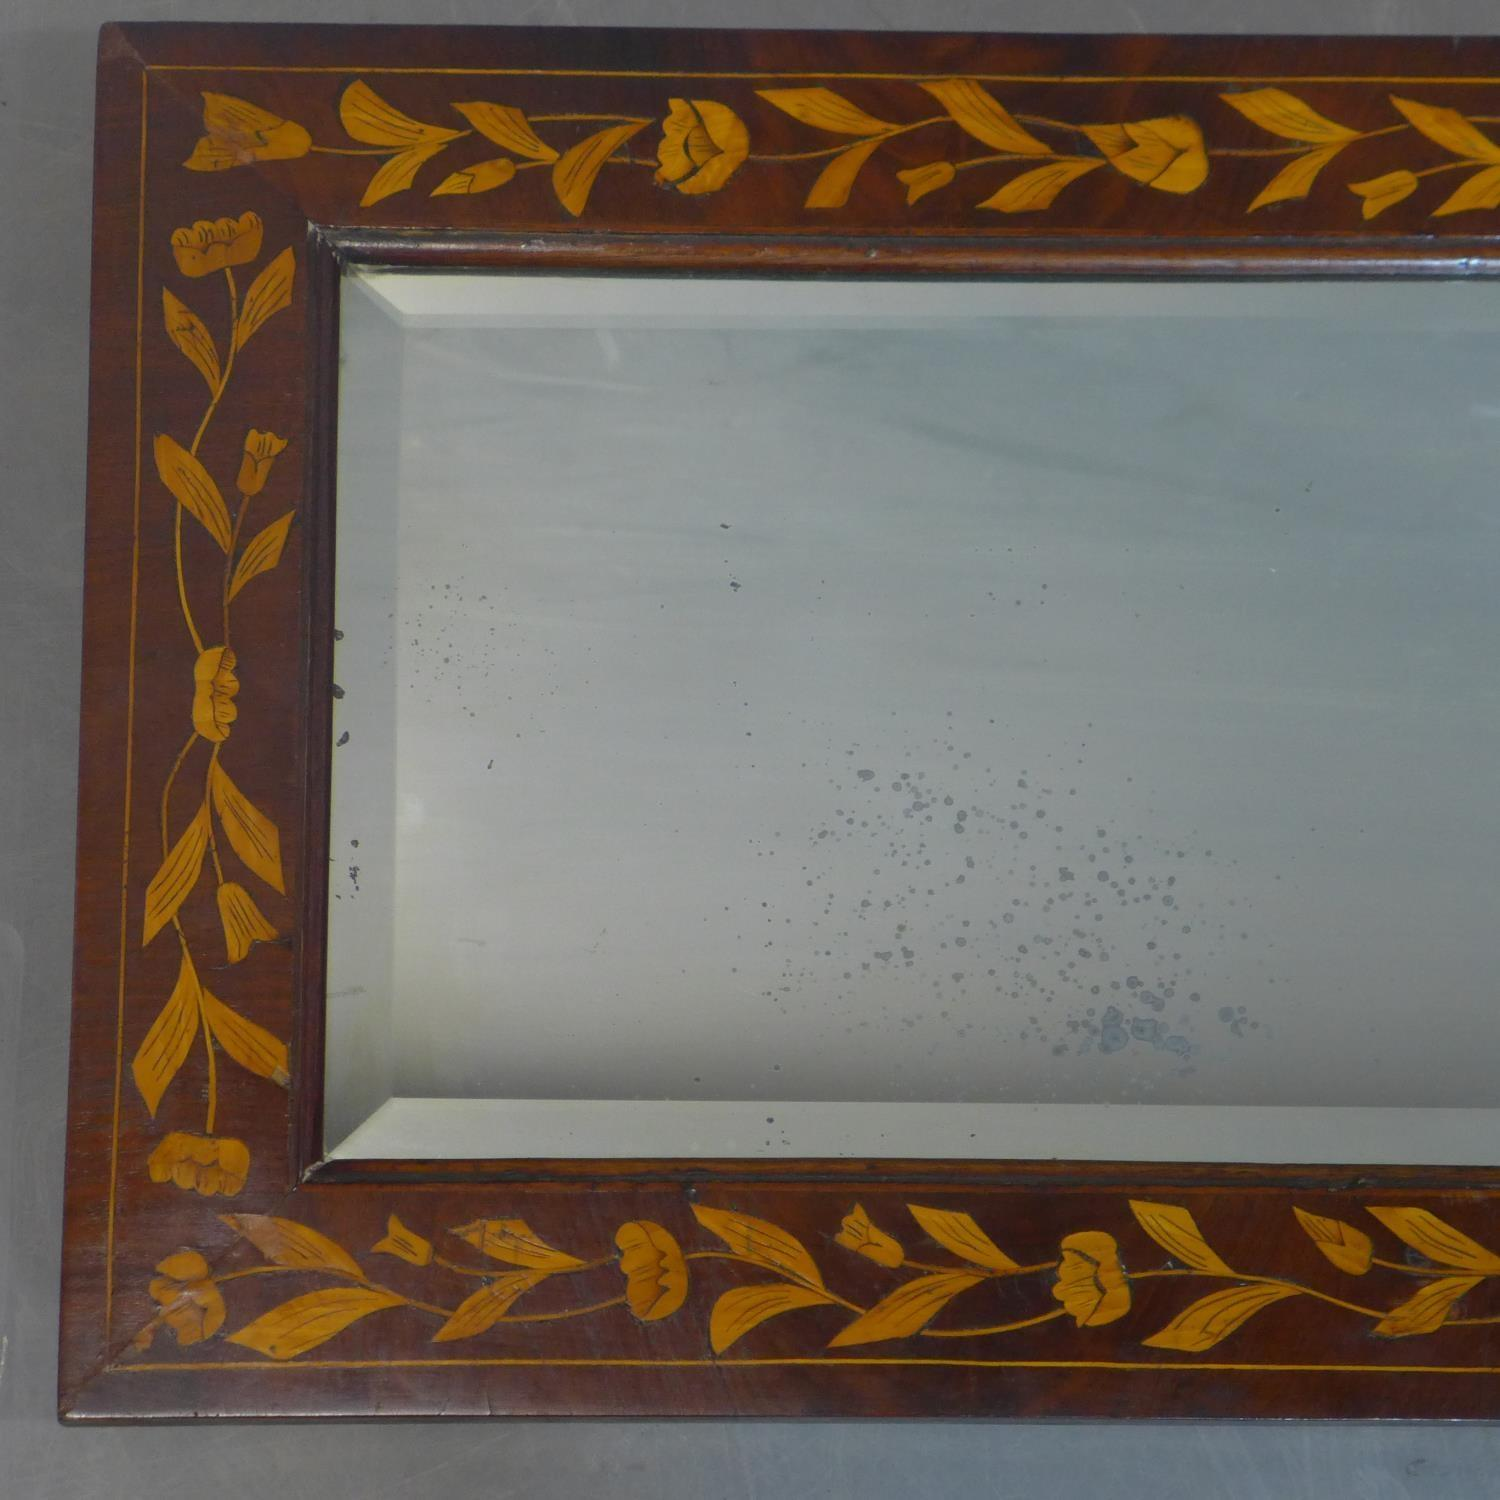 Lot 100 - A late 19th or early 20th century Dutch marquetry inlaid mahogany wall mirror, inlaid with